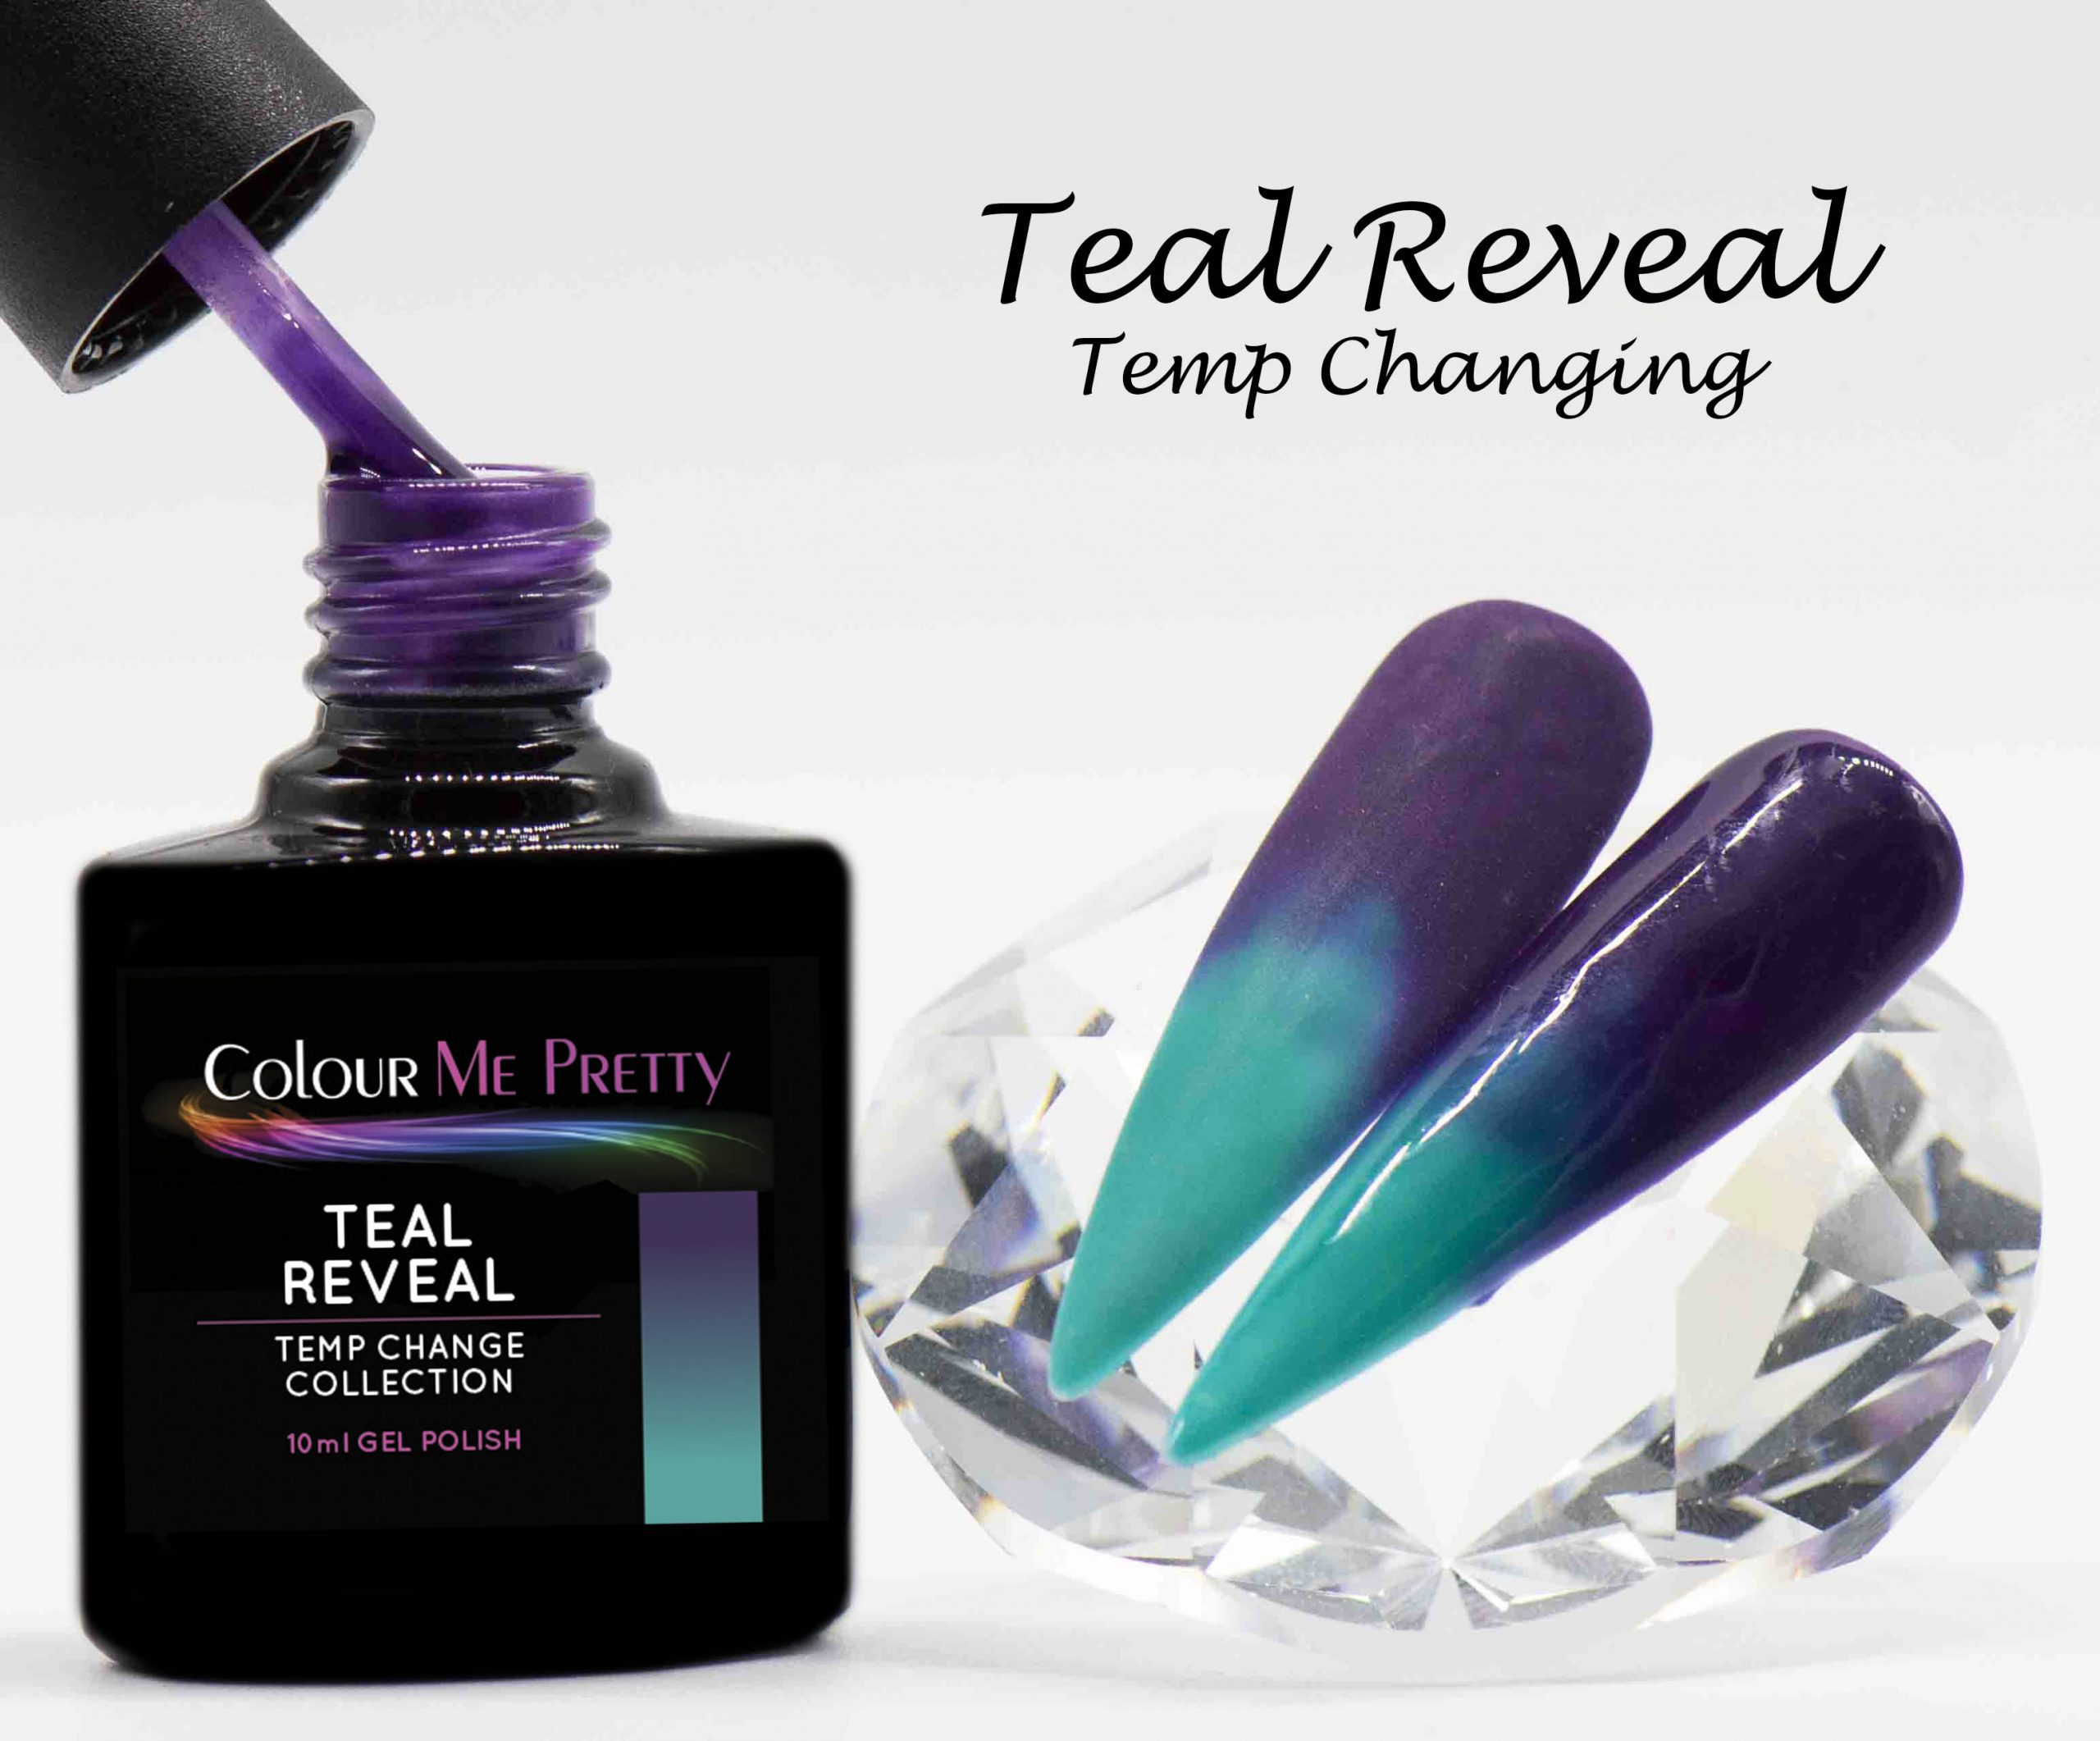 Temp Change Teal Reveal